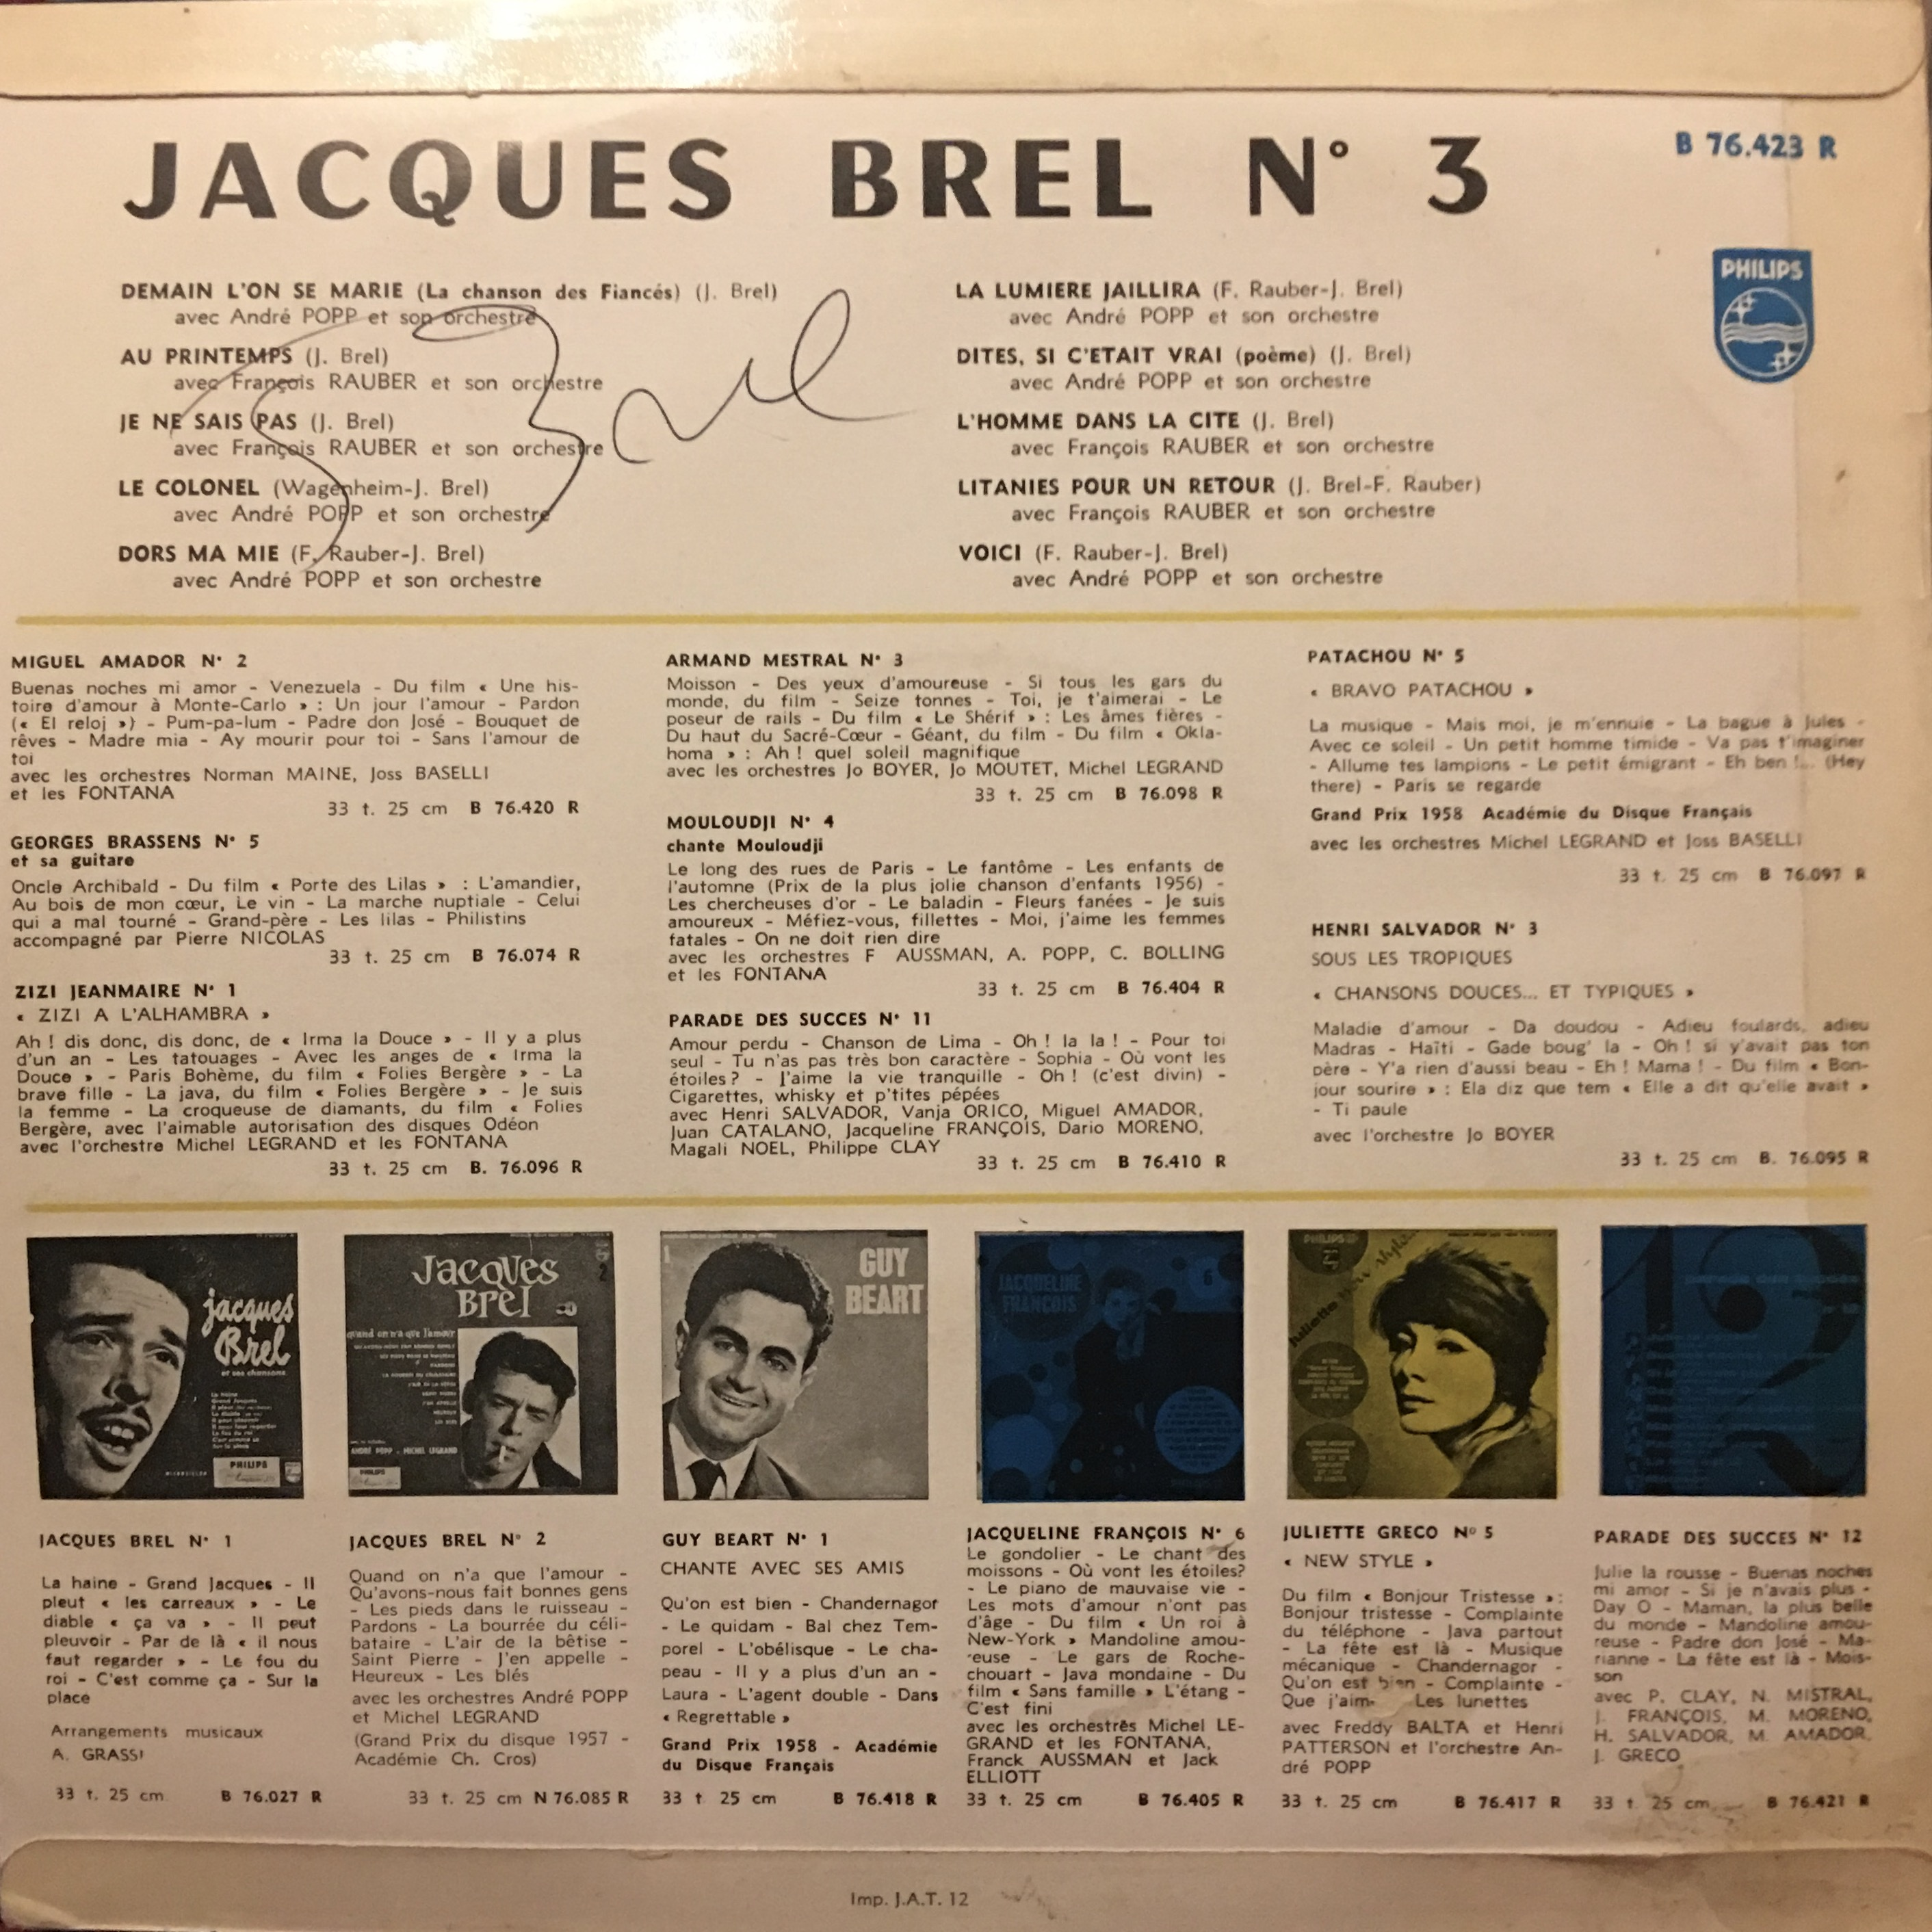 Jacques Brel Vinyl Album - No. 3 - Demain L'On Se Marie - Signed